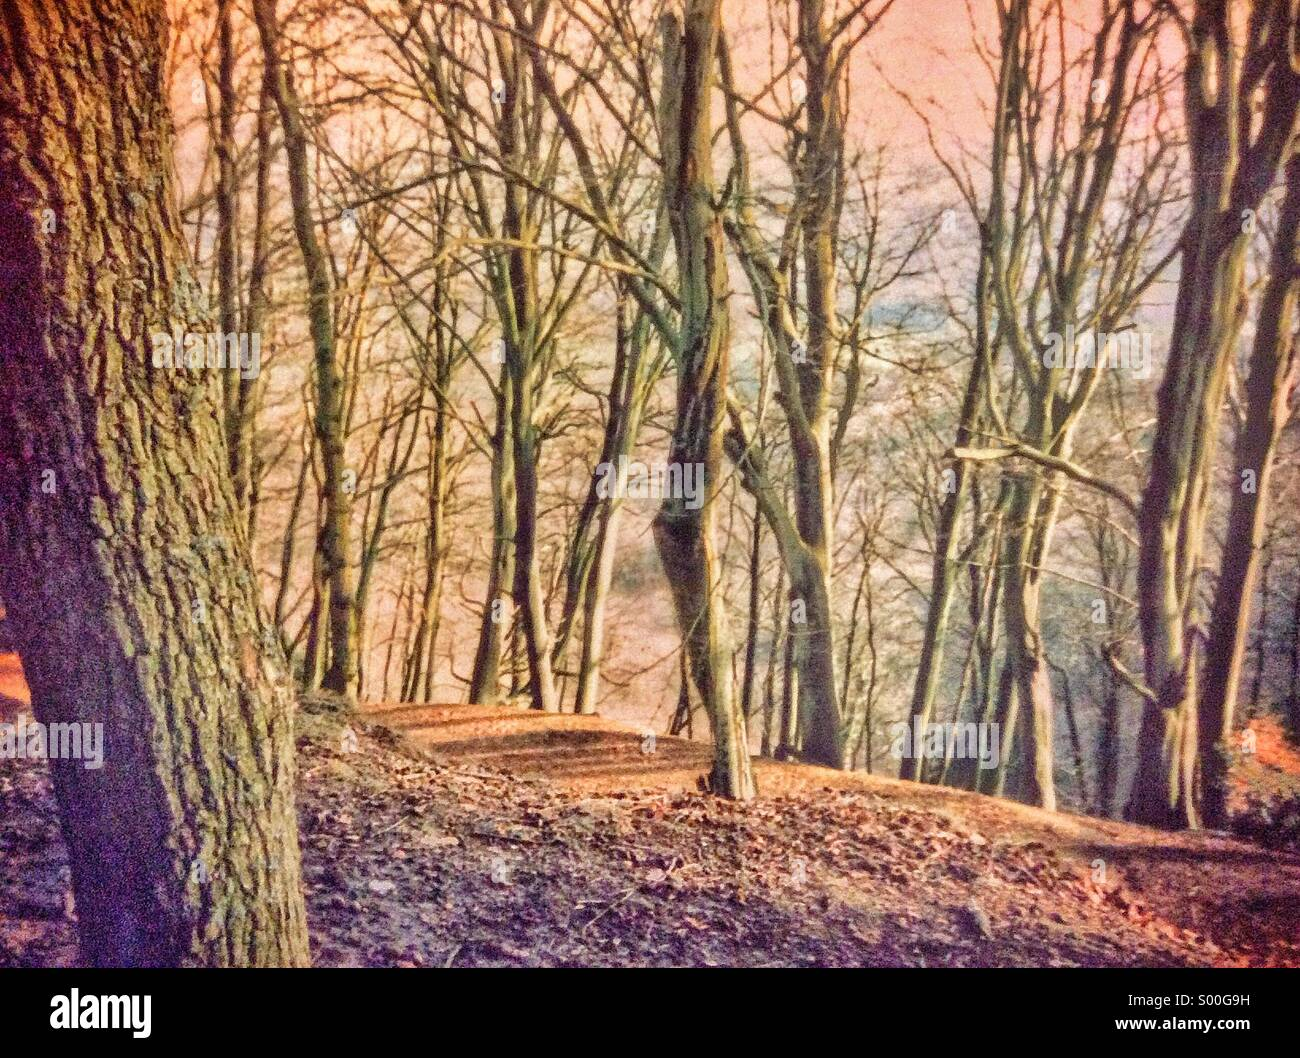 Forest in winter at dusk - Stock Image